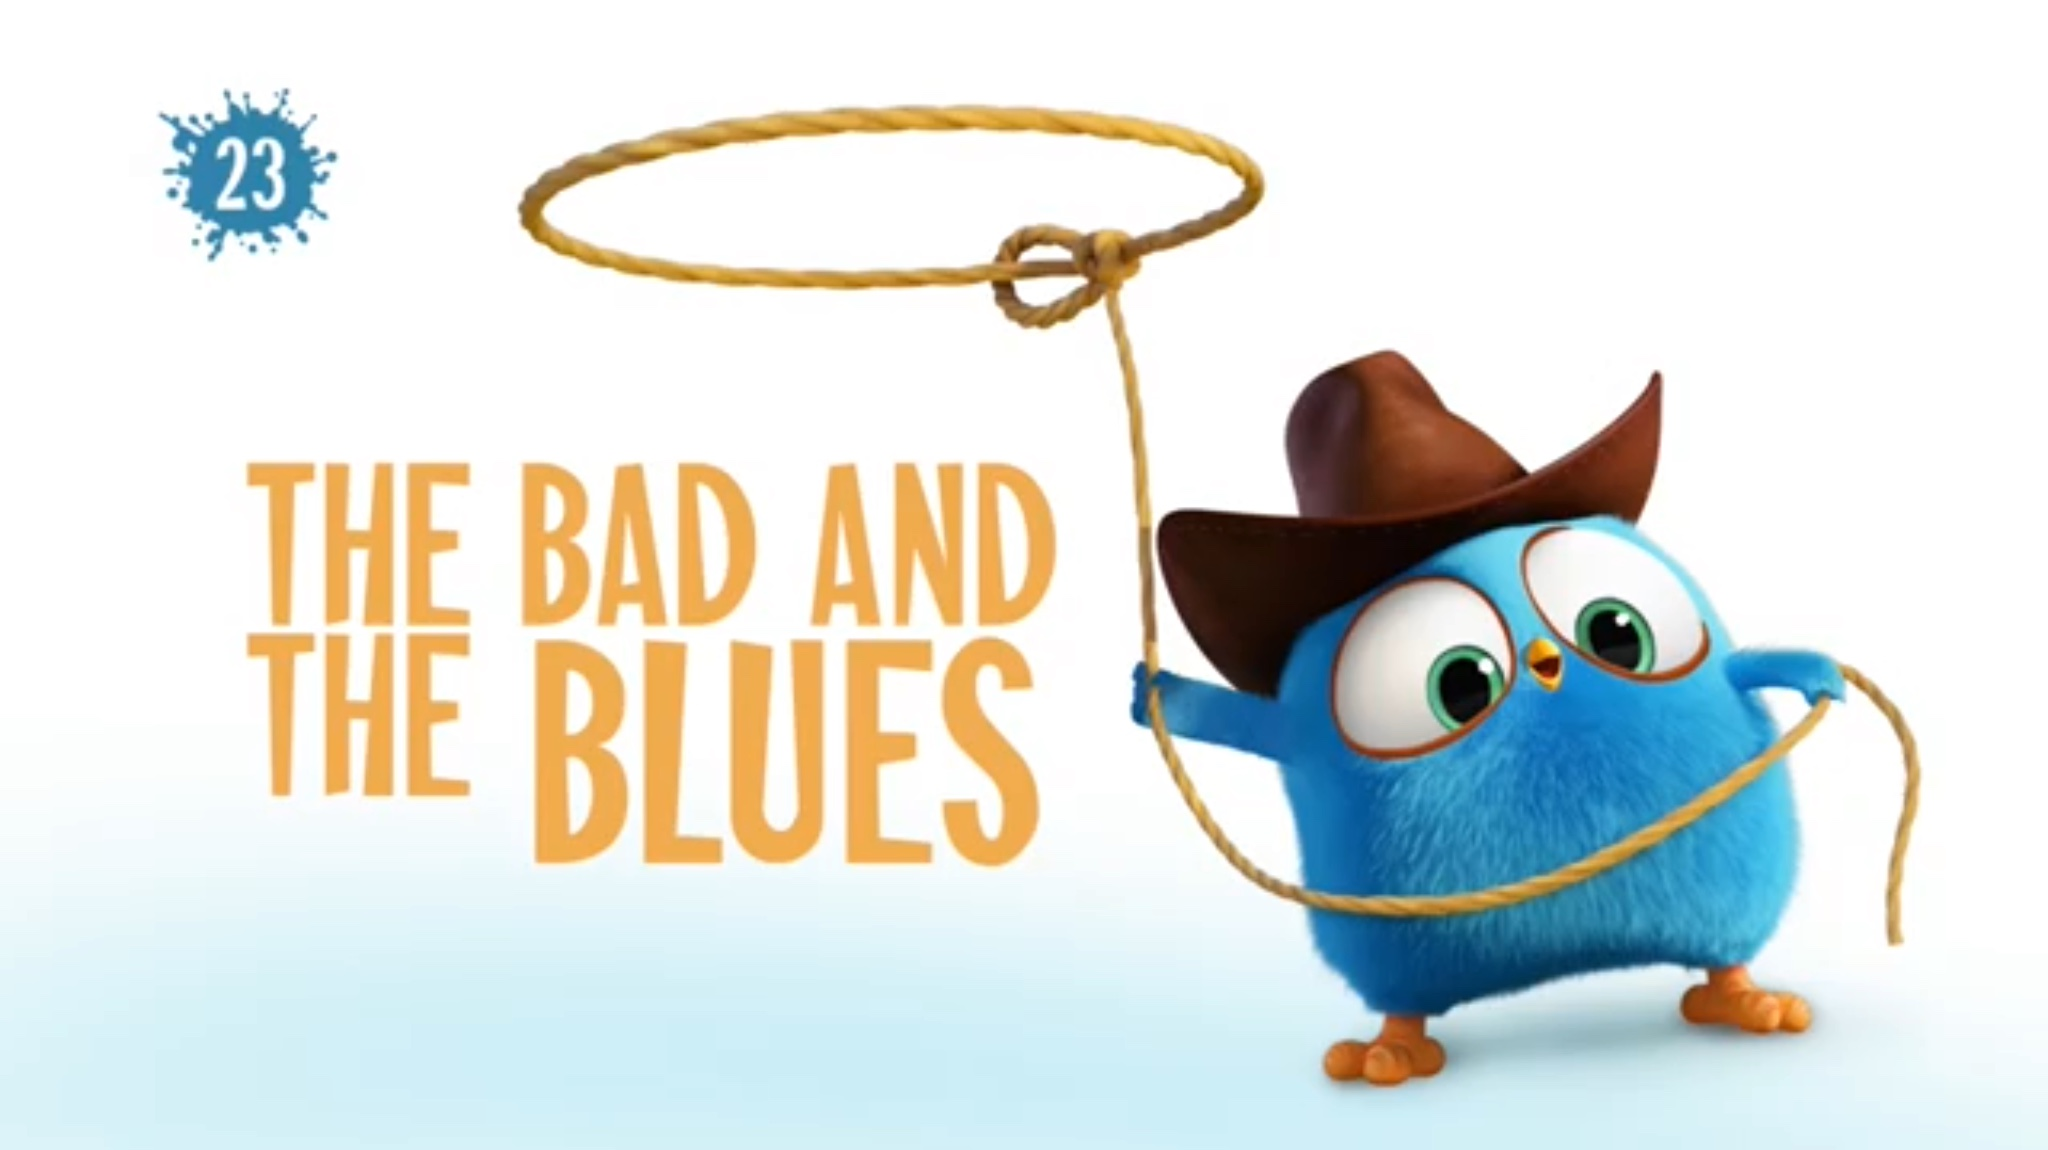 The Bad and the Blues